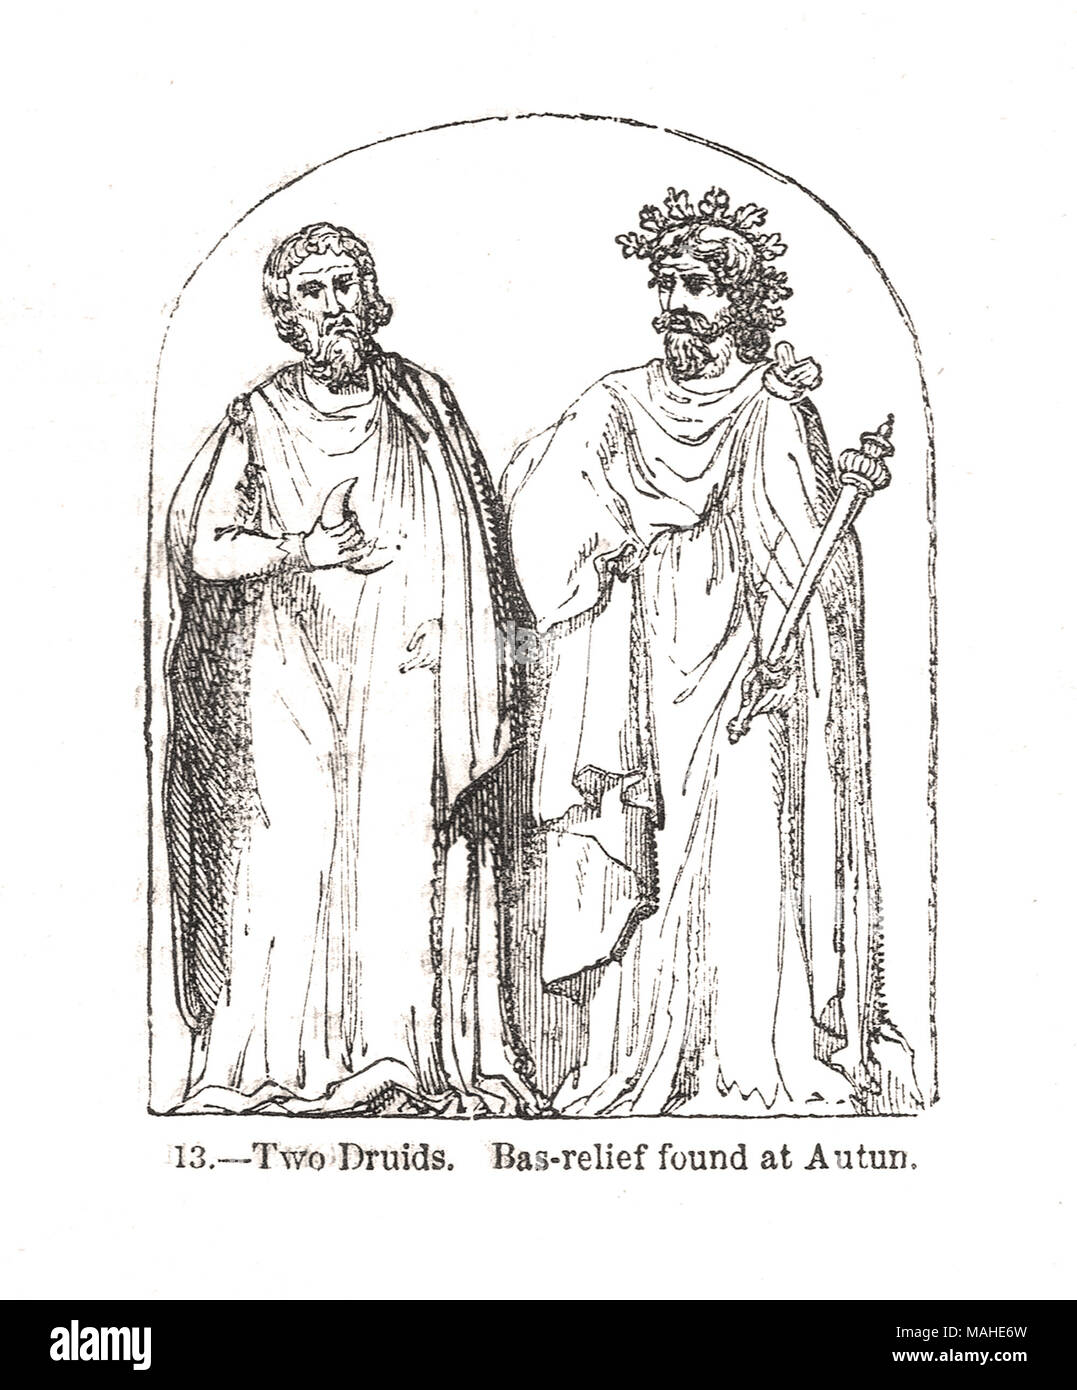 Two druids,  Bas-relief found at Autun - Stock Image